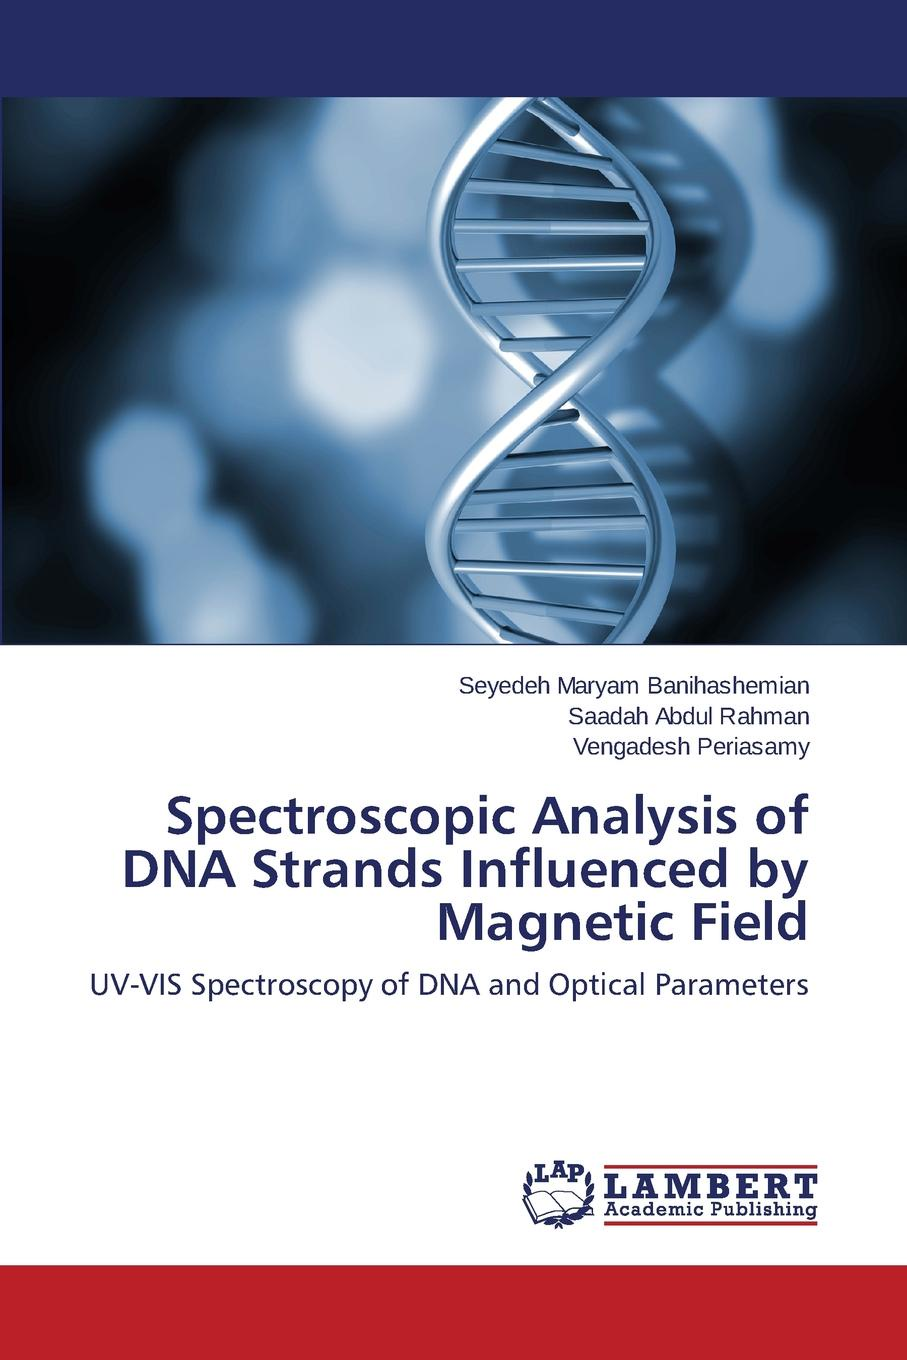 Banihashemian Seyedeh Maryam, Abdul Rahman Saadah, Periasamy Vengadesh Spectroscopic Analysis of DNA Strands Influenced by Magnetic Field free shipping 10pcs lot n channel field effect pn4391a pn4391 new original